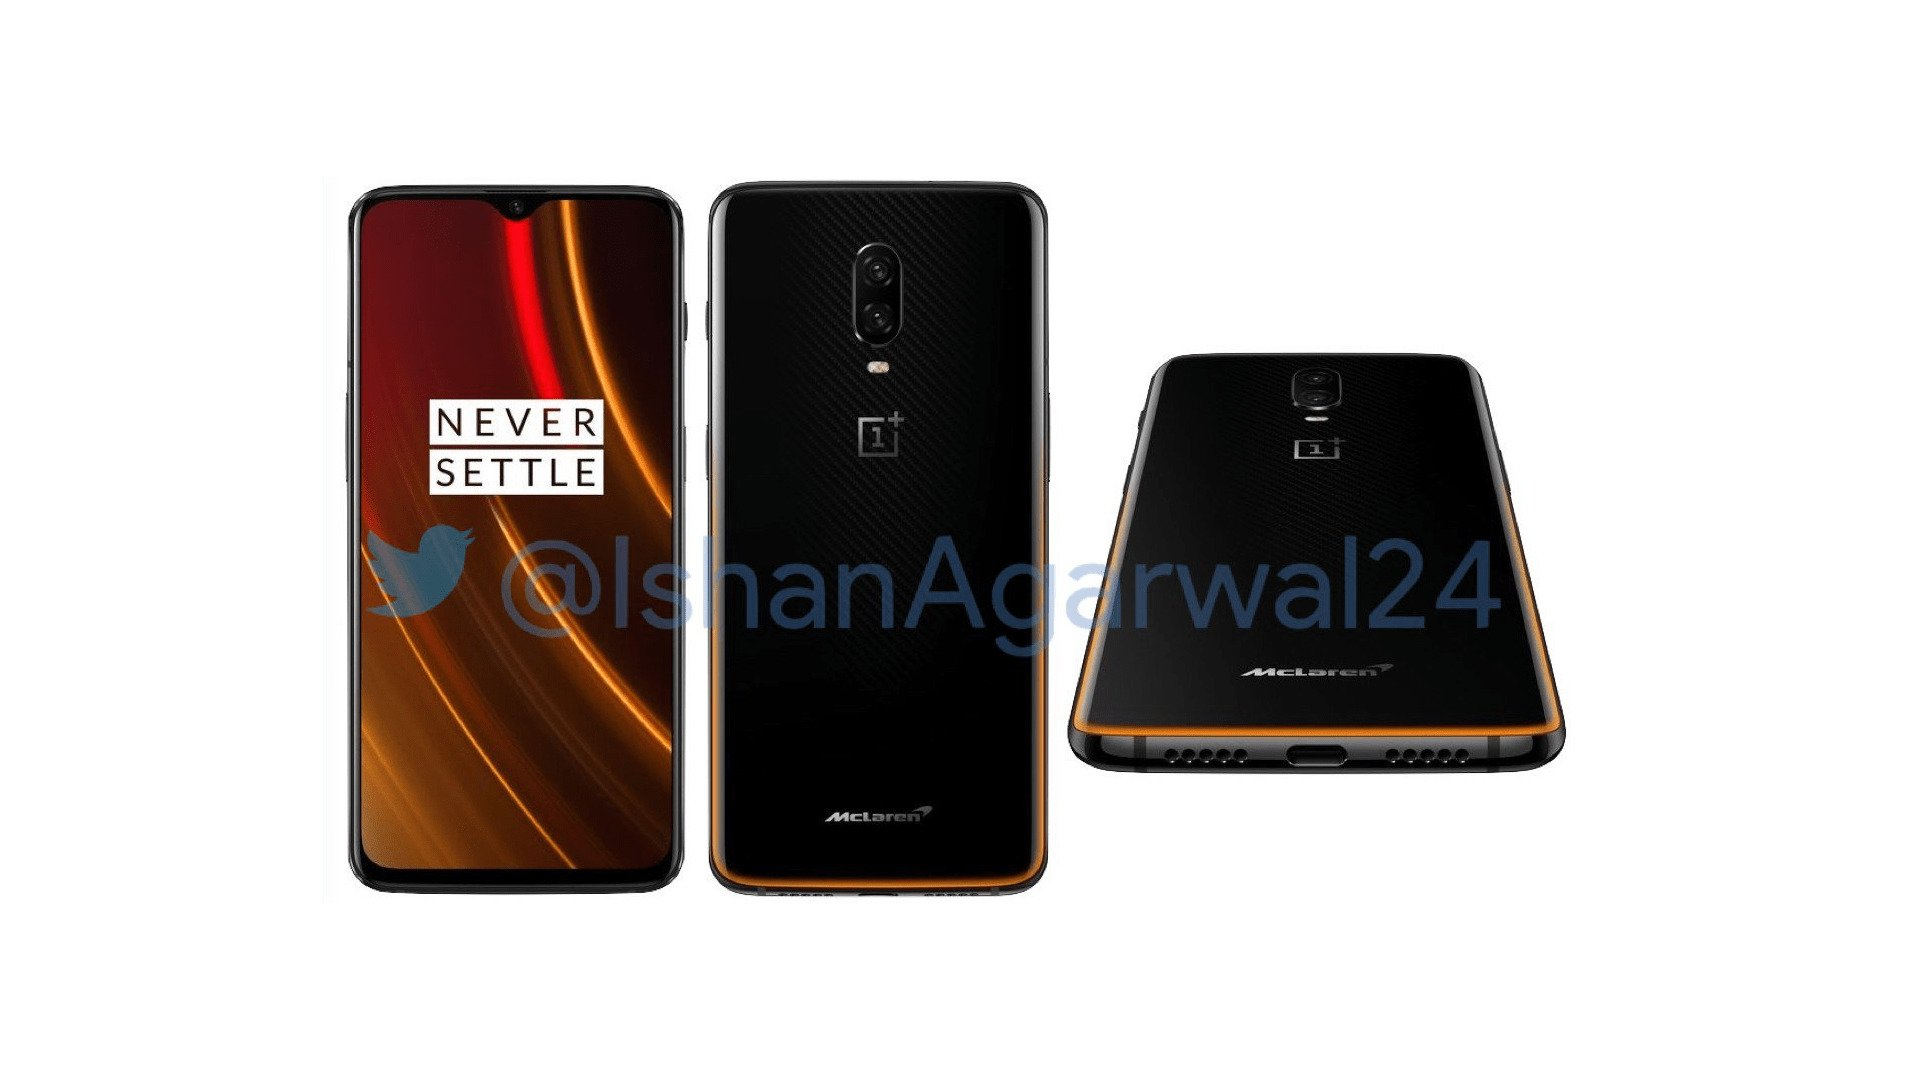 Upcoming OnePlus 6T McLaren Edition official renders leaked online